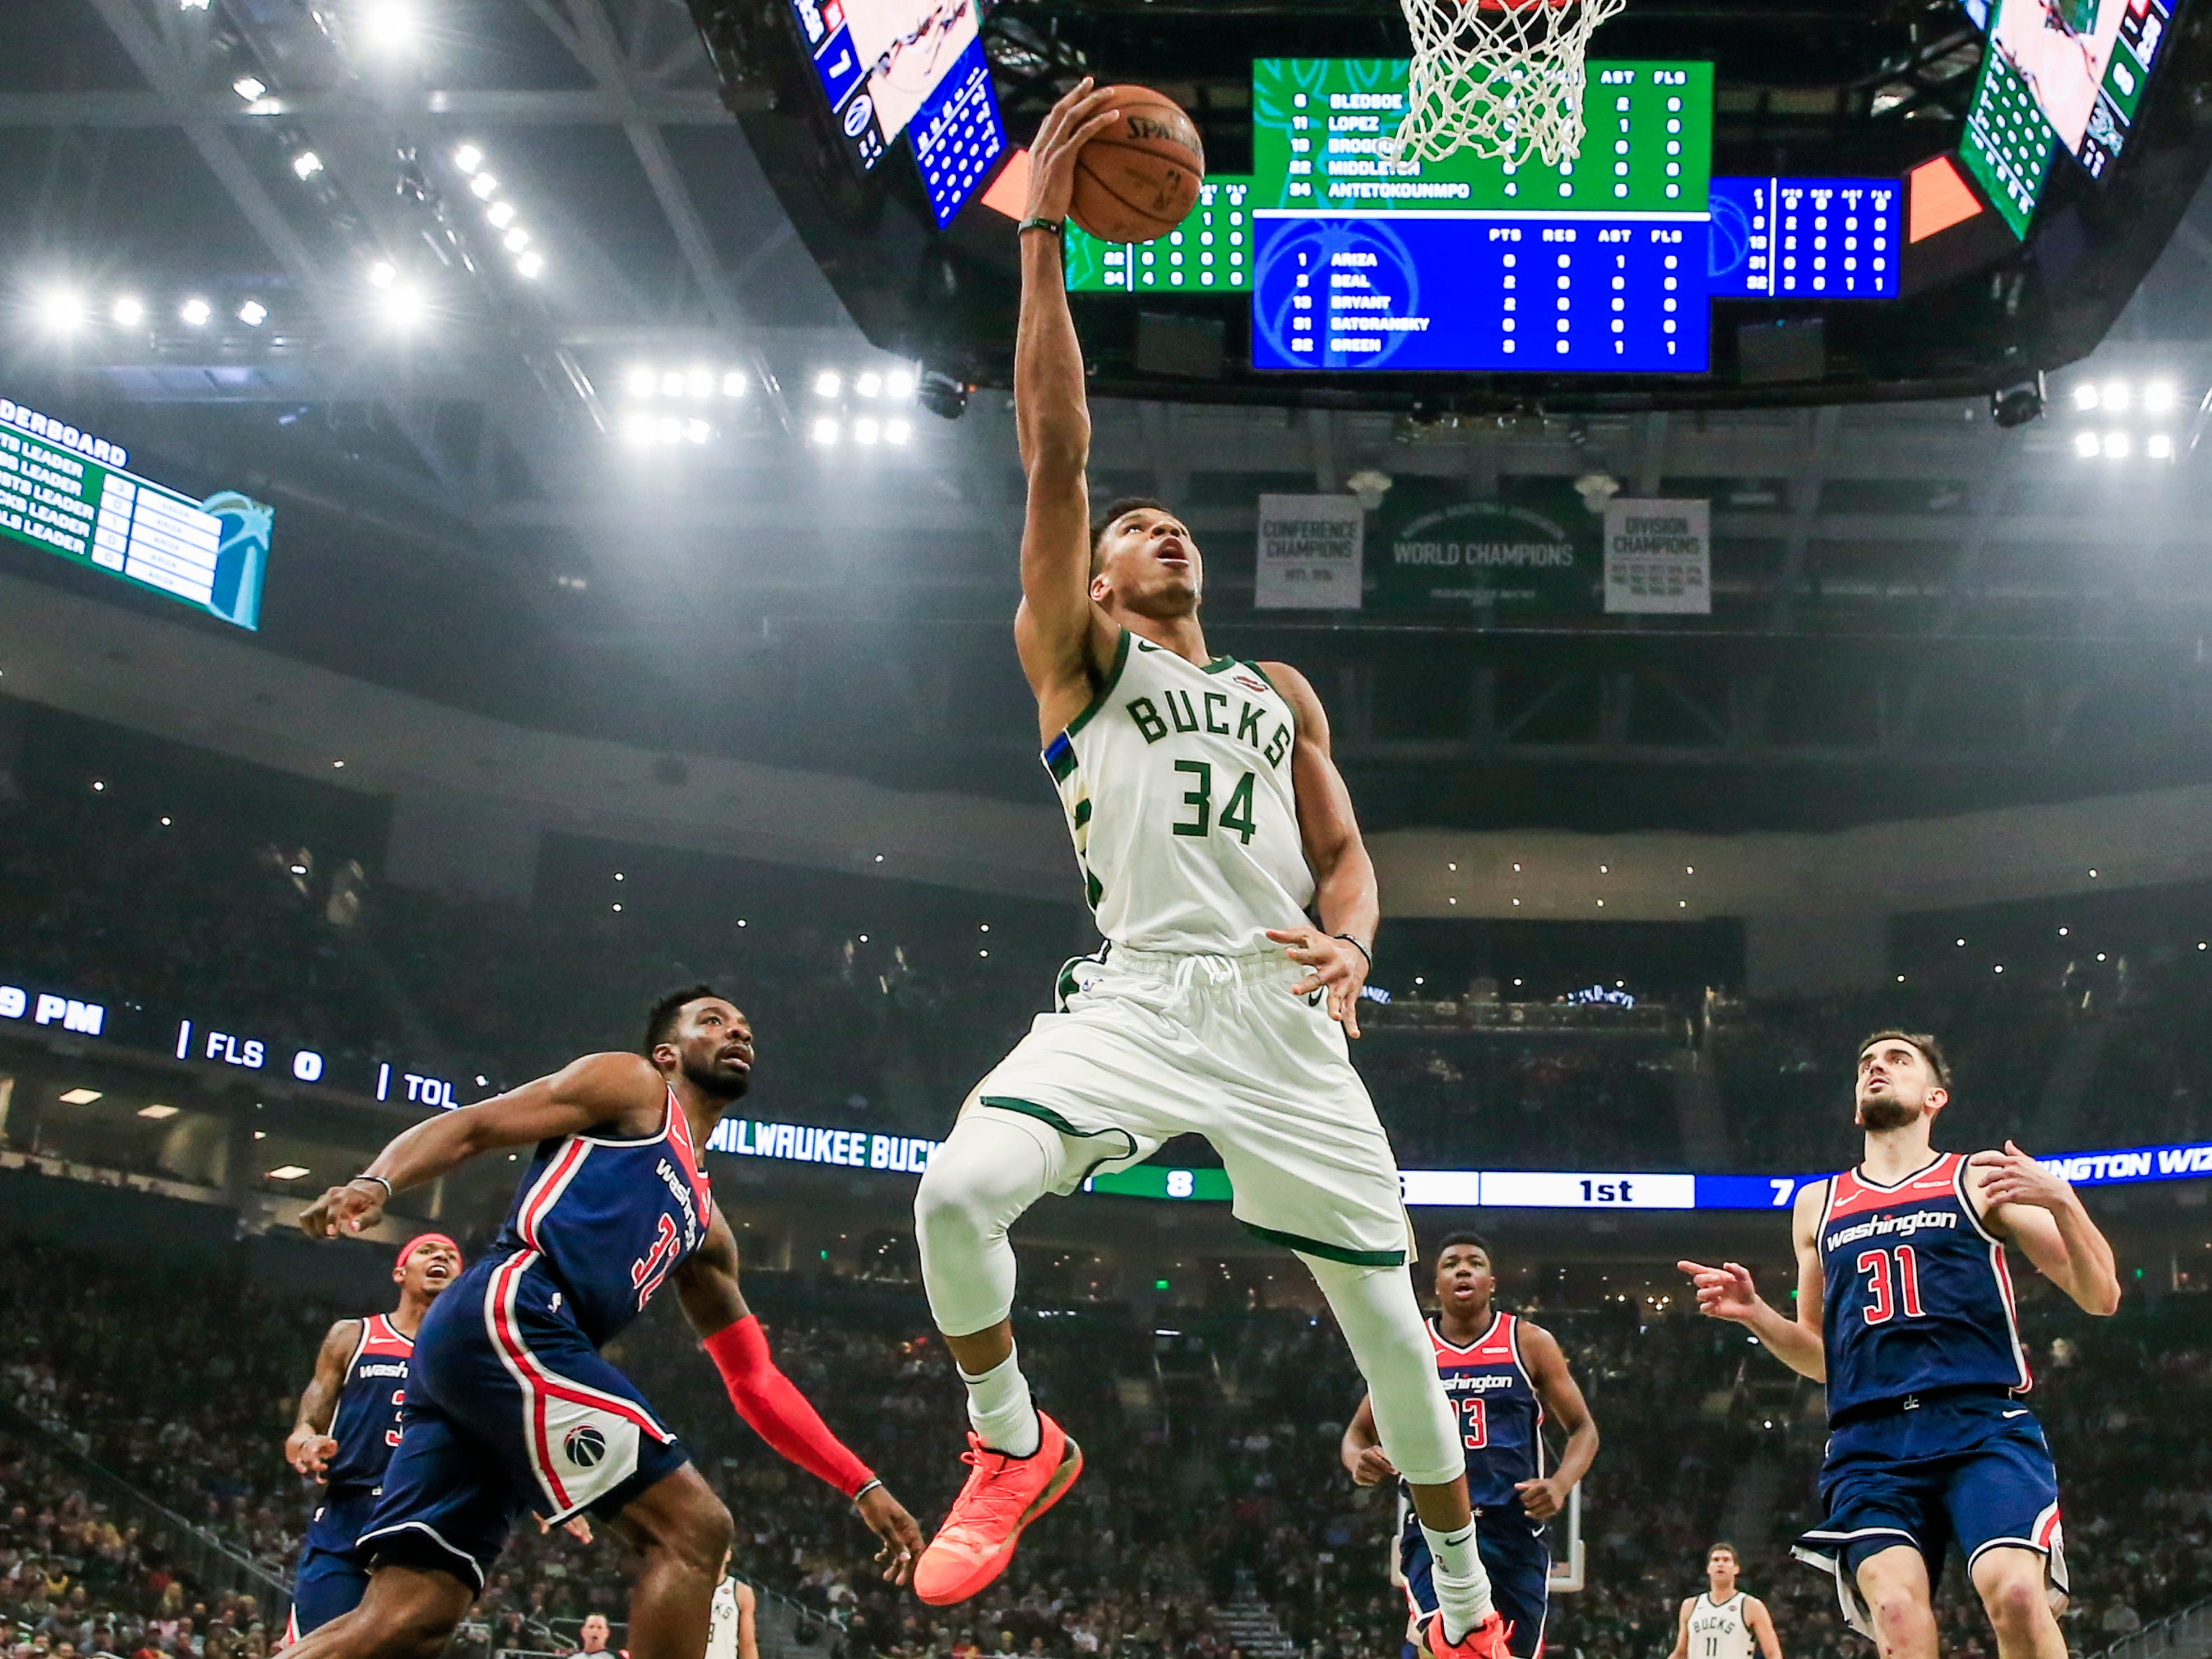 Bucks forward Giannis Antetokounmpo leaves the Wizards' defense in chase mode as he goes up for an easy basket during the first half on Wednesday.